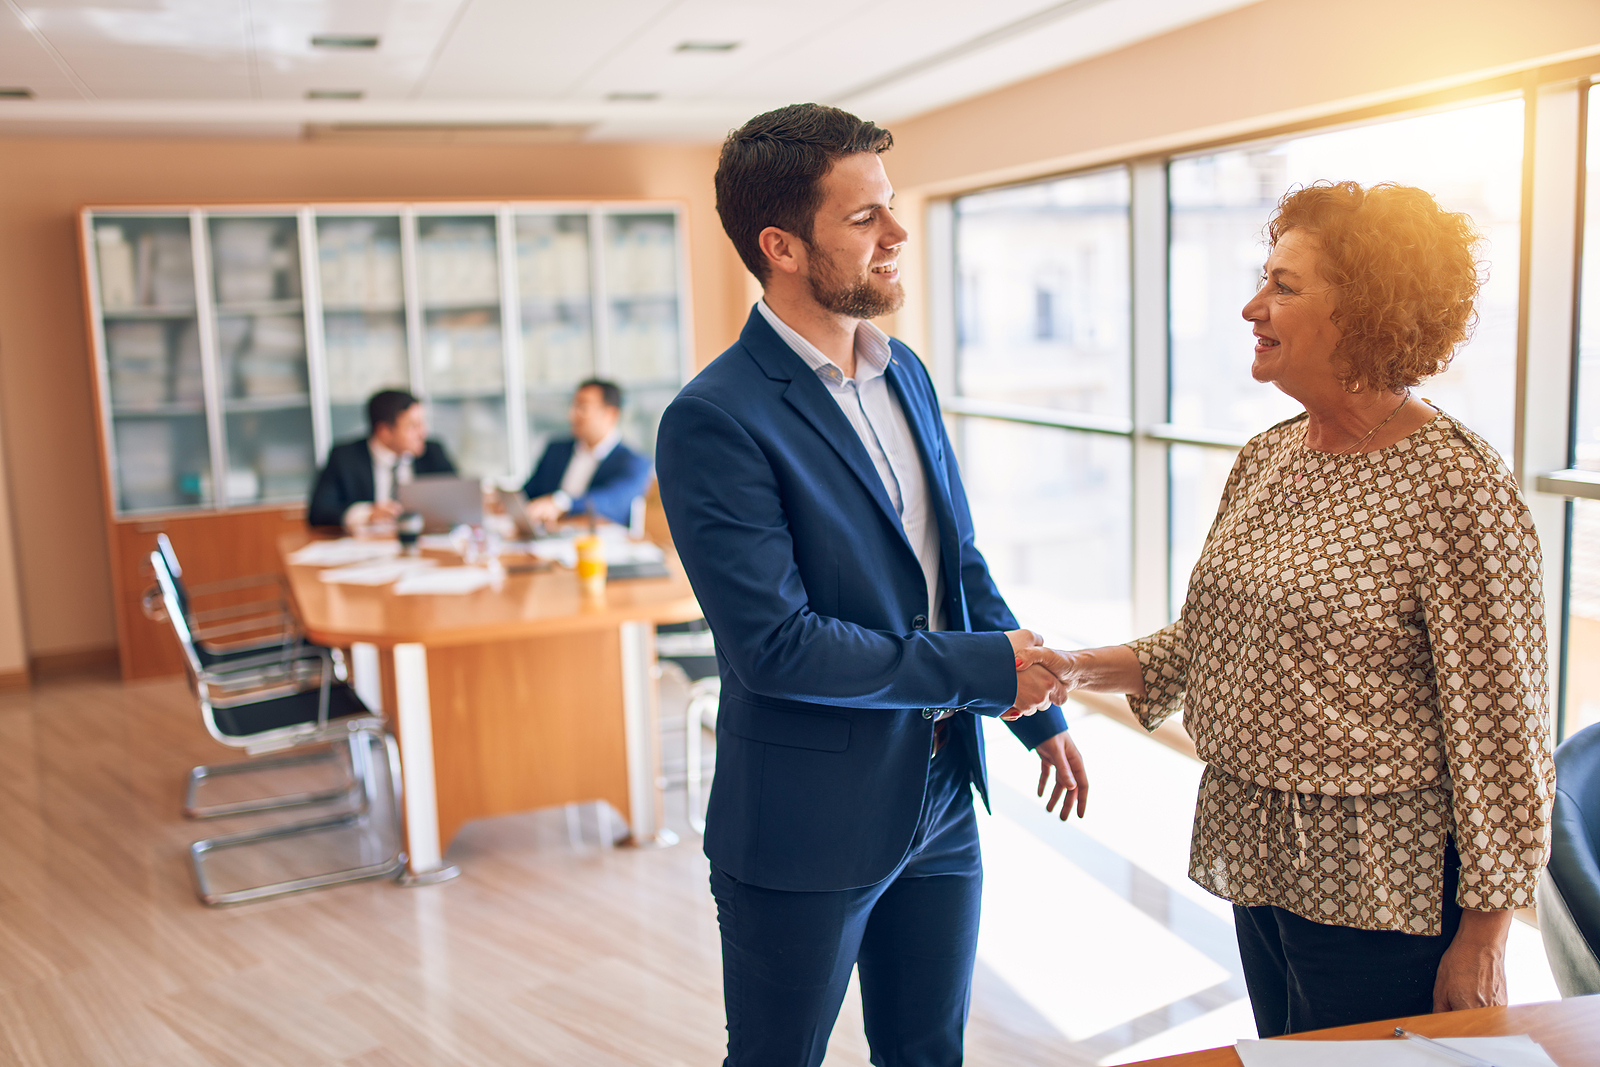 Is Your Business at Risk of Losing Senior Staff Members?